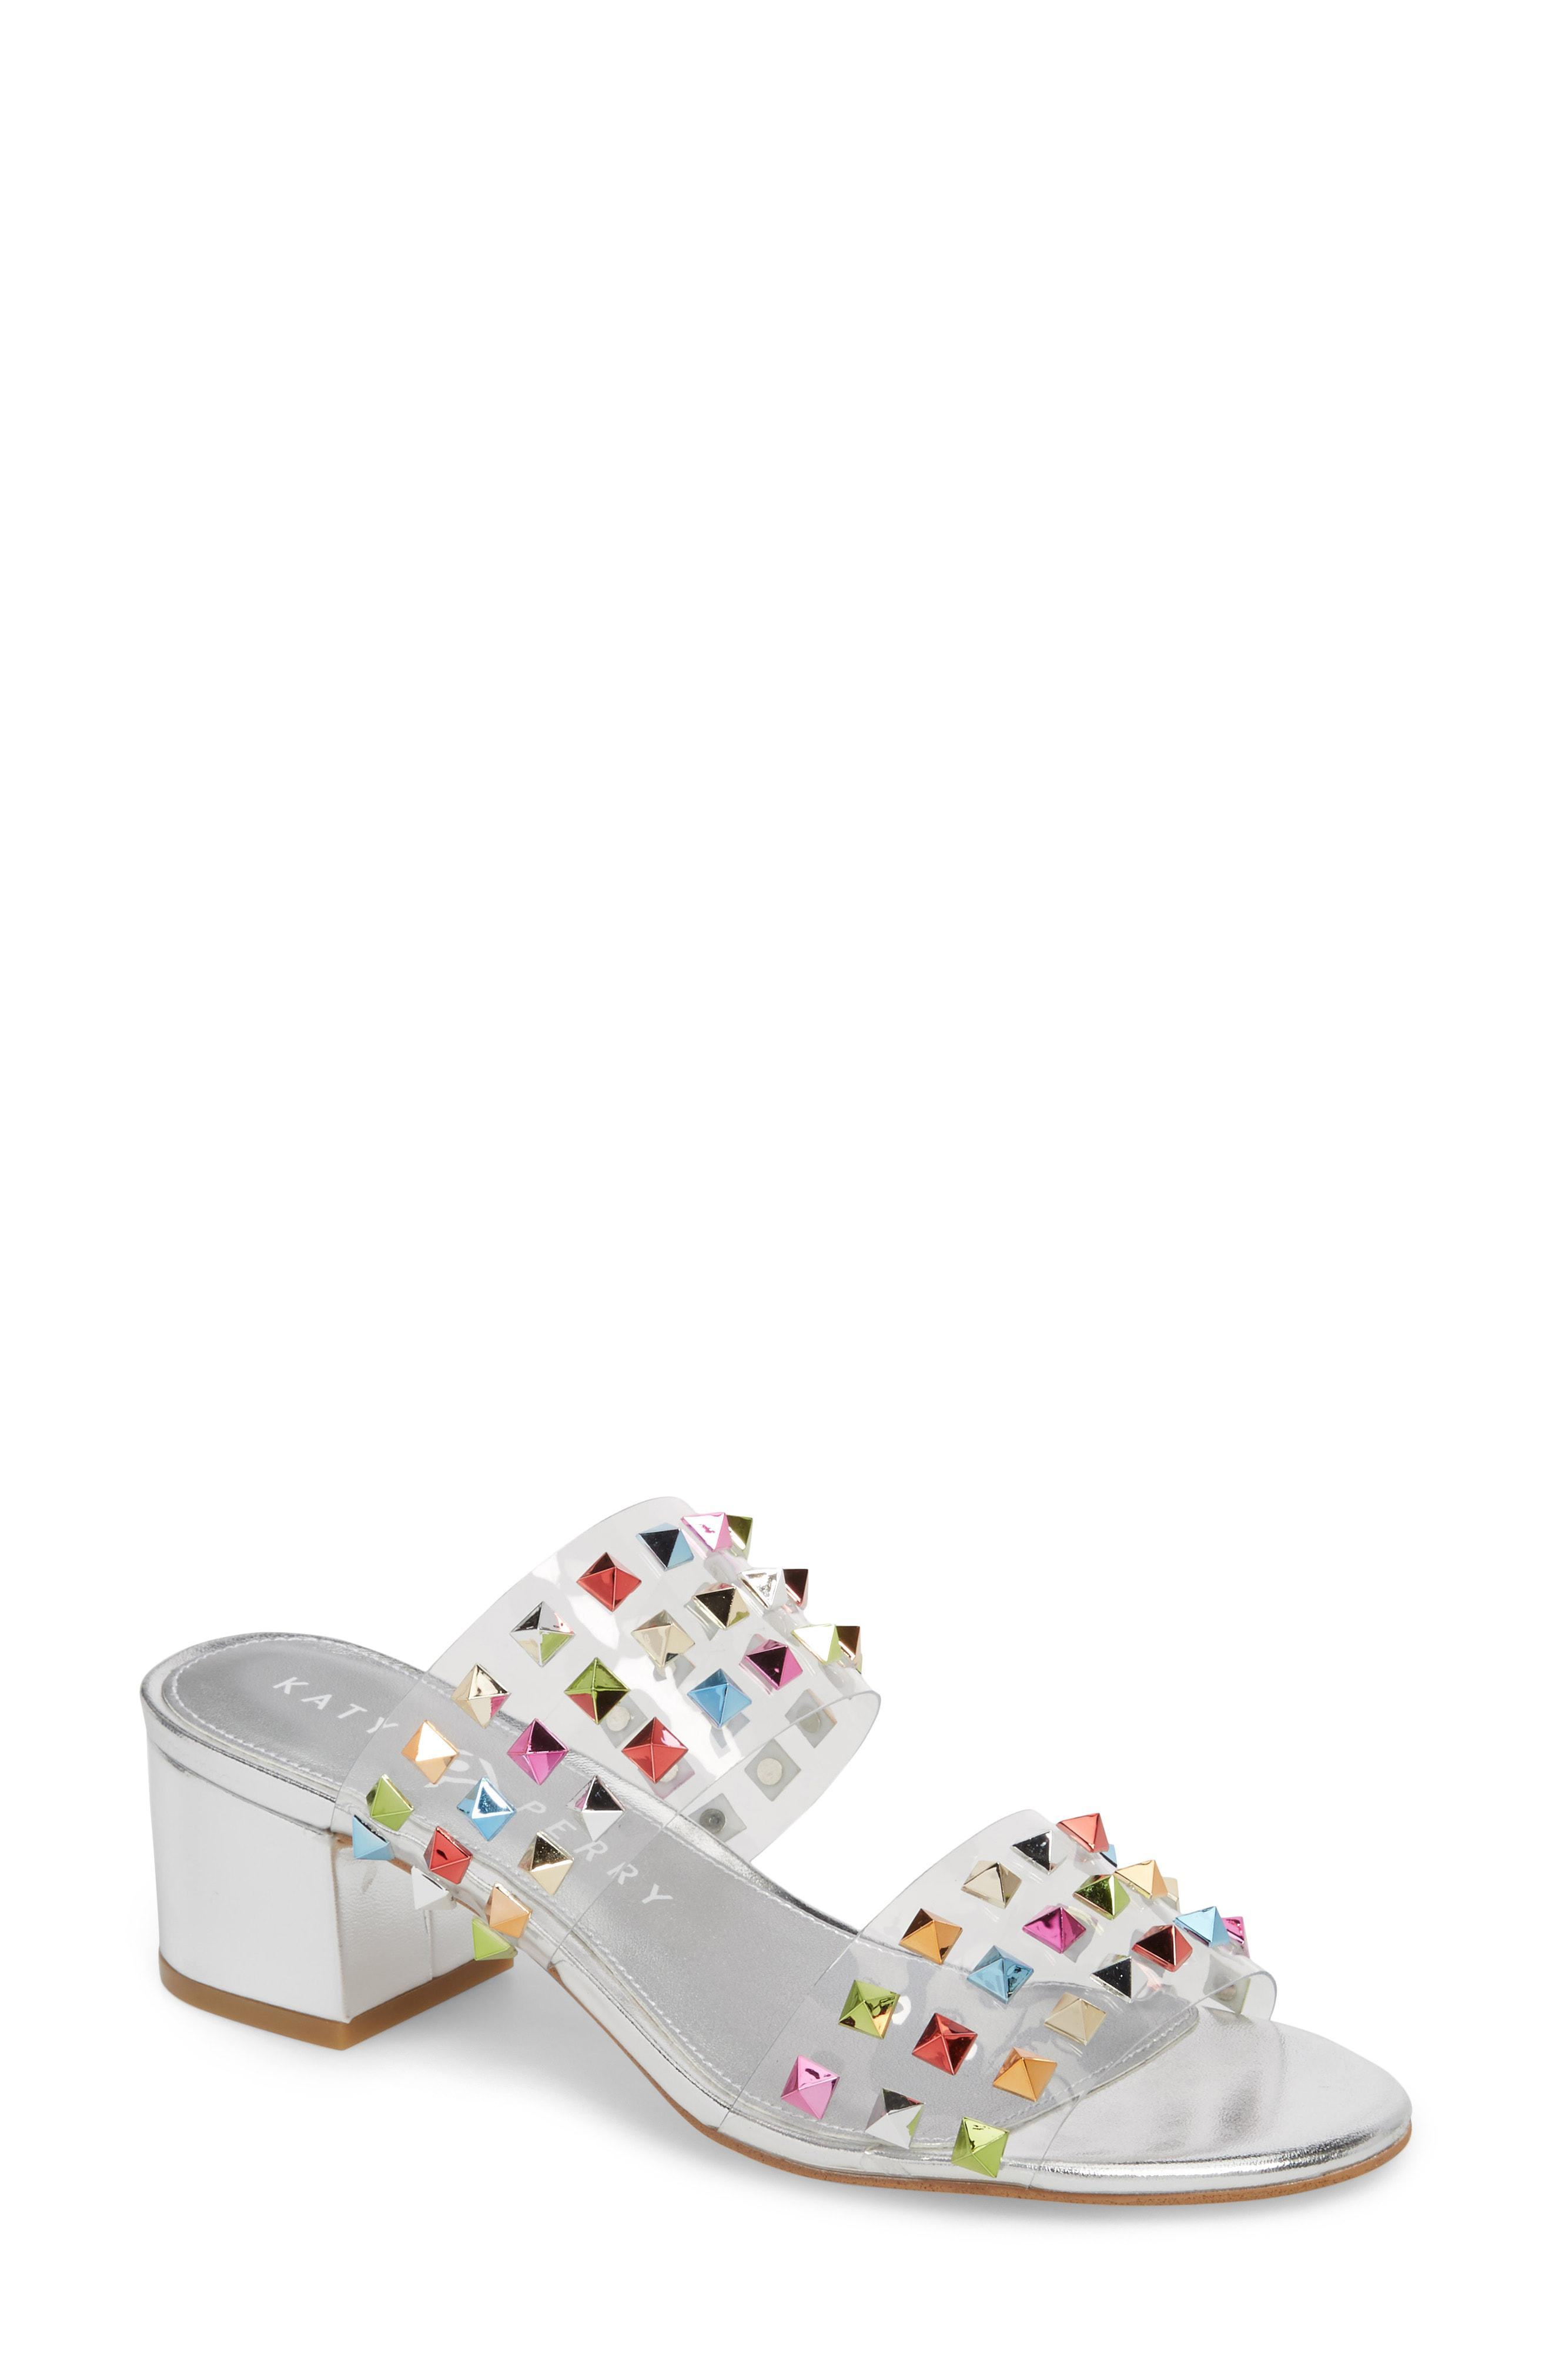 a75ad5b4349 Lyst - Katy Perry The Kenzie Studded Sandal in White